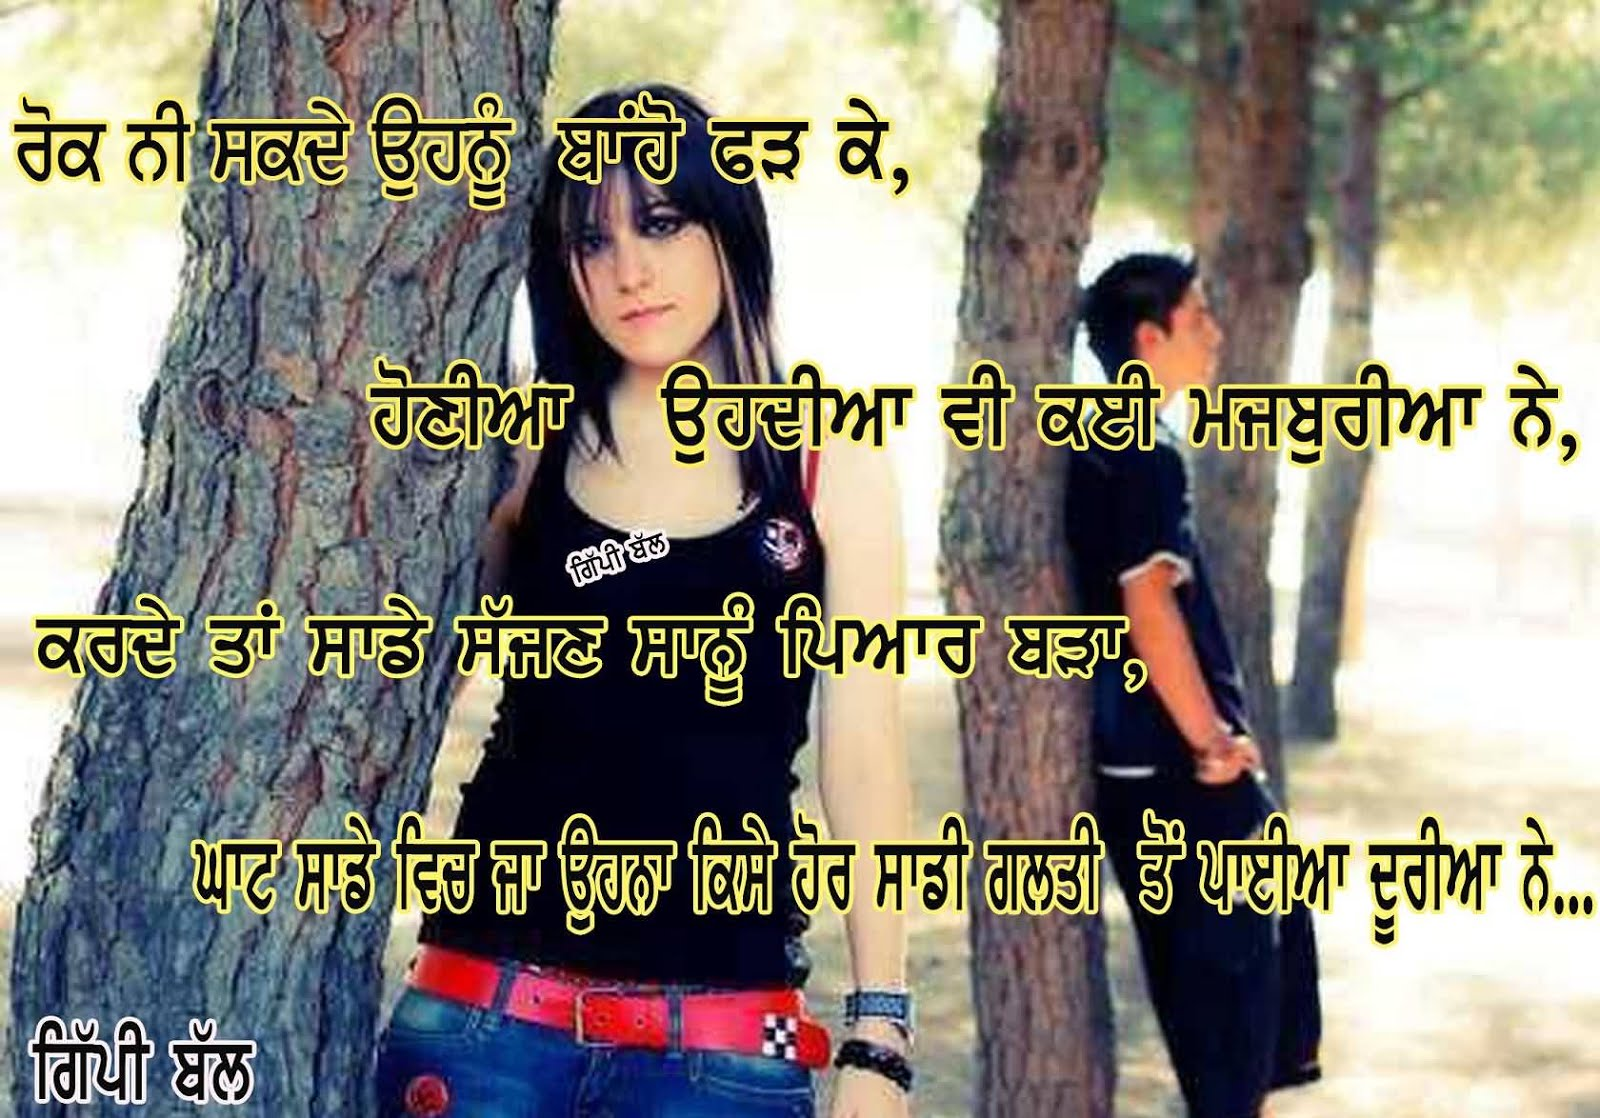 Sad Punjabi Shayari comments, Status, Quotes For Facebook Scraps 4 U Facebook Scraps Orkut ...